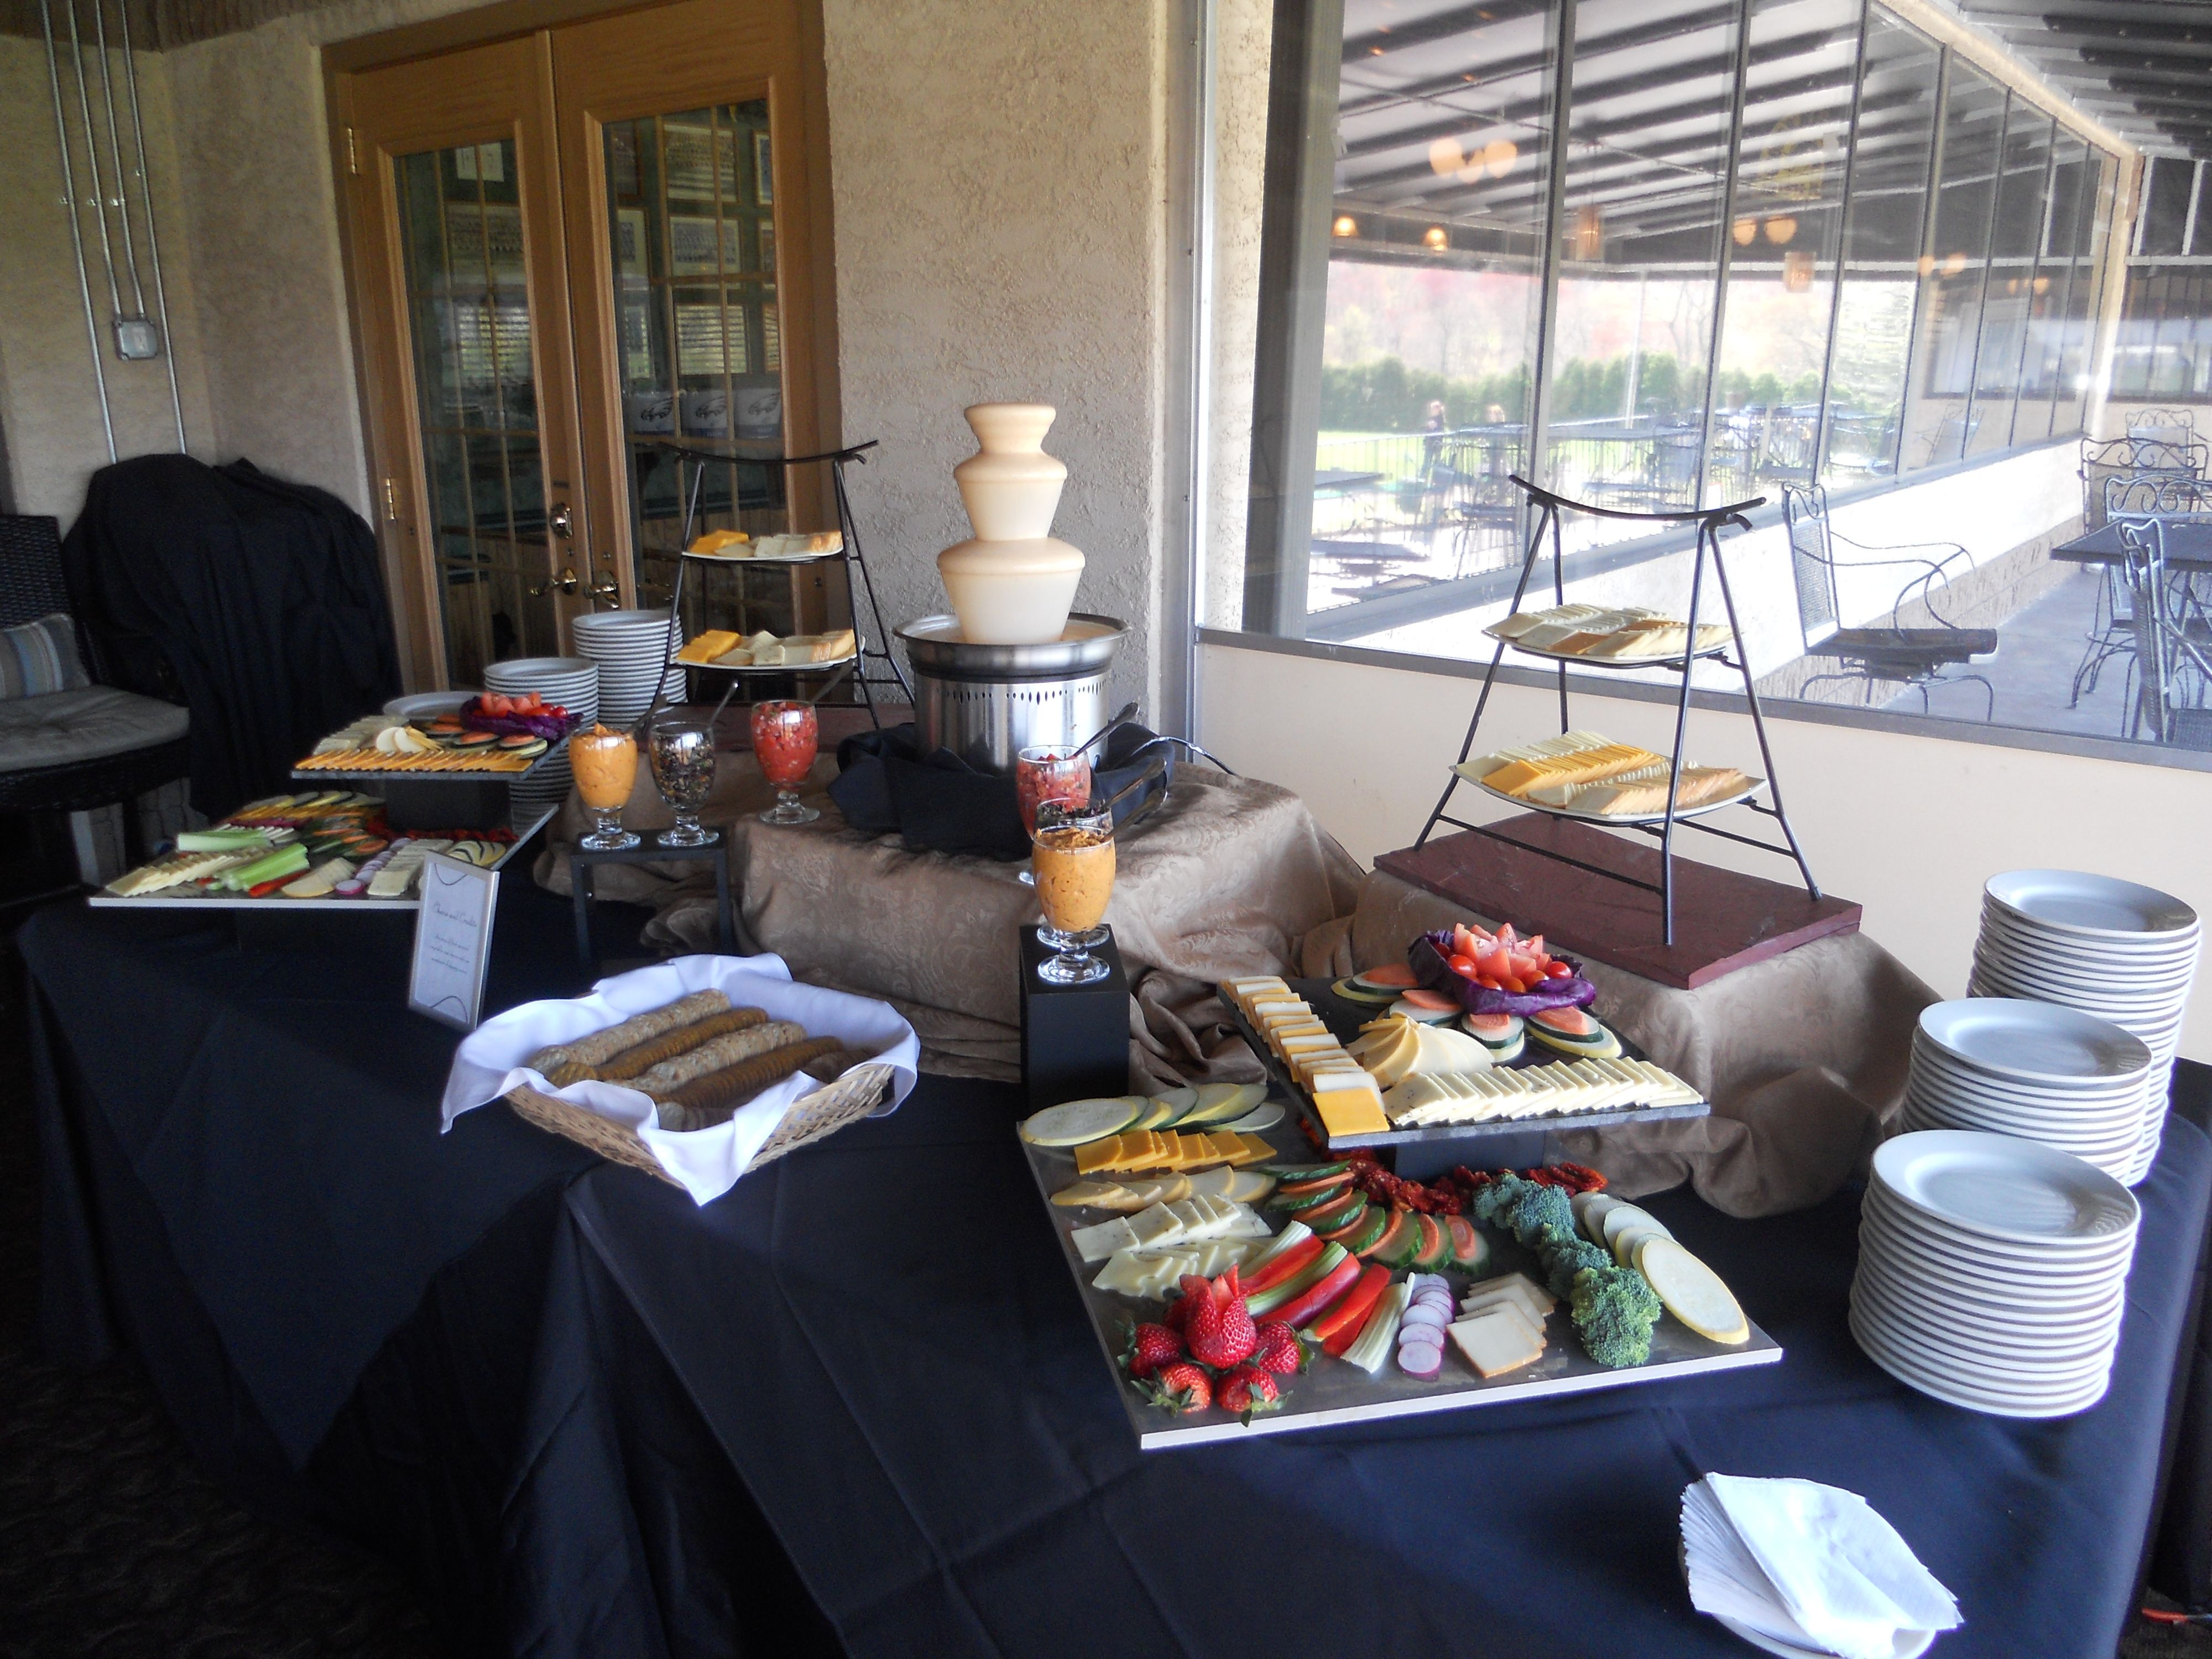 Fondue and Antipasti Station #welovefoodstations #fondue #antipasti #valleybrookweddings #valleybrookcountryclub